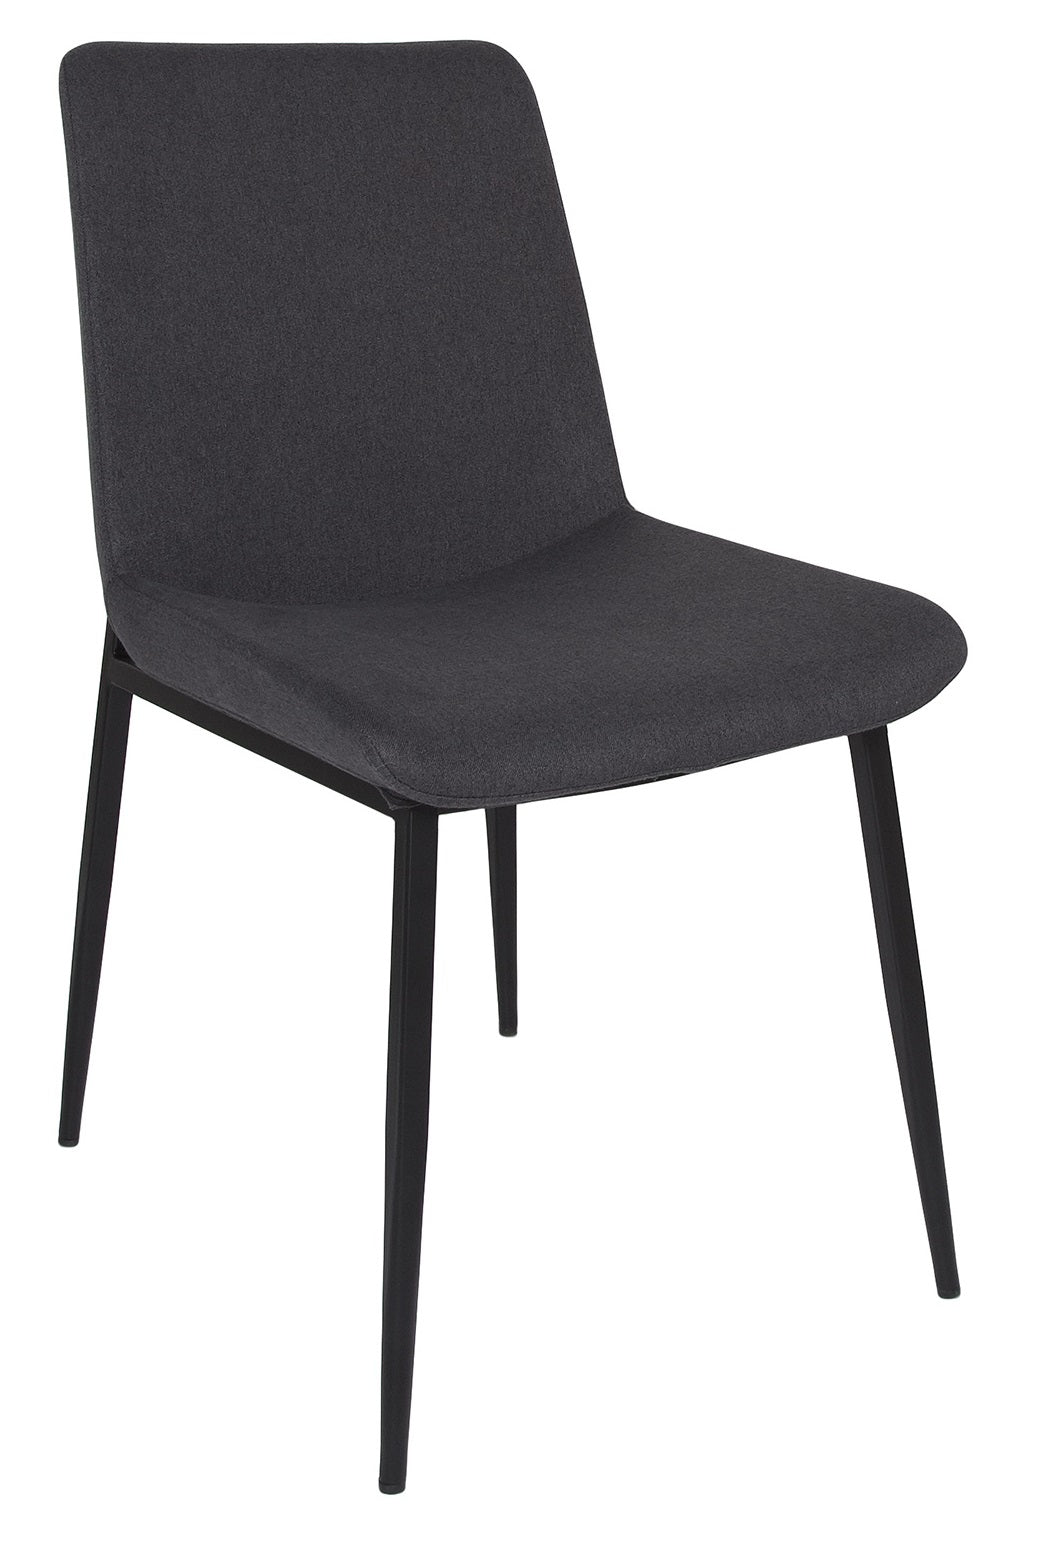 Thames Chair – Graphite / Matte Black